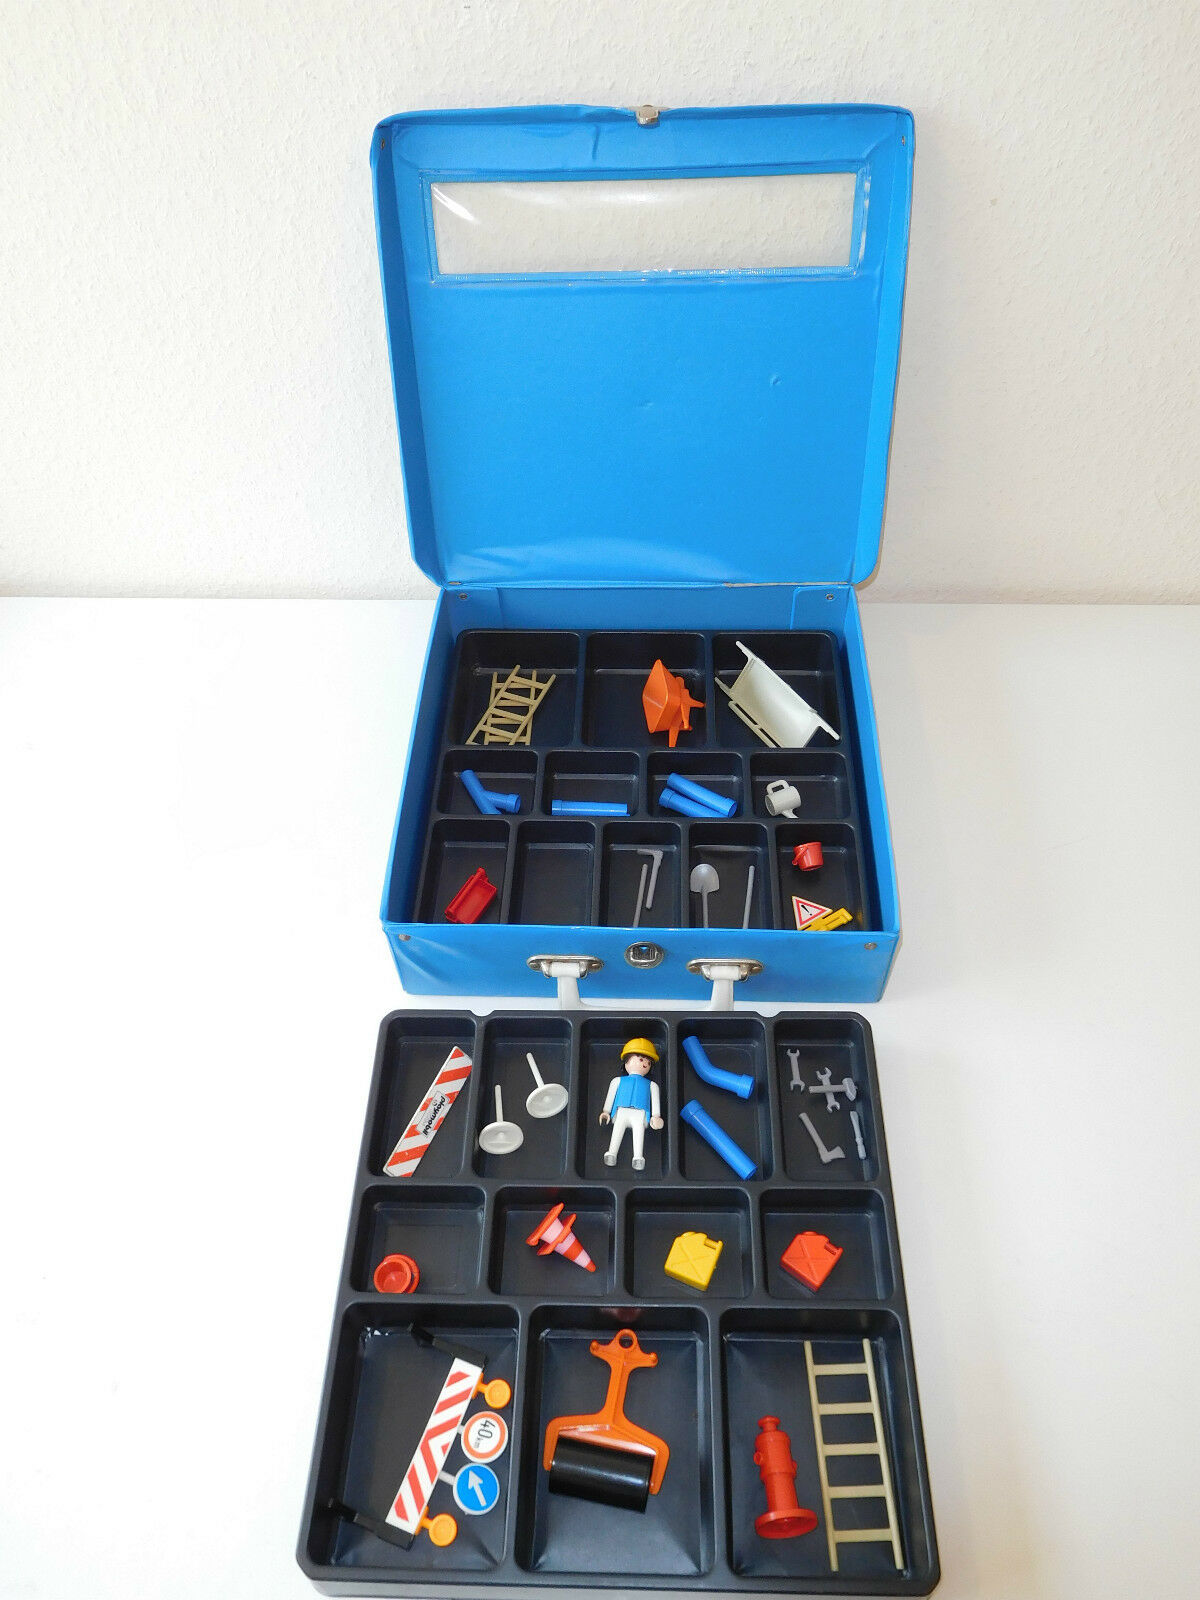 Blau playmobil playmobil playmobil collector case  sammlerkoffer with contents 023be4